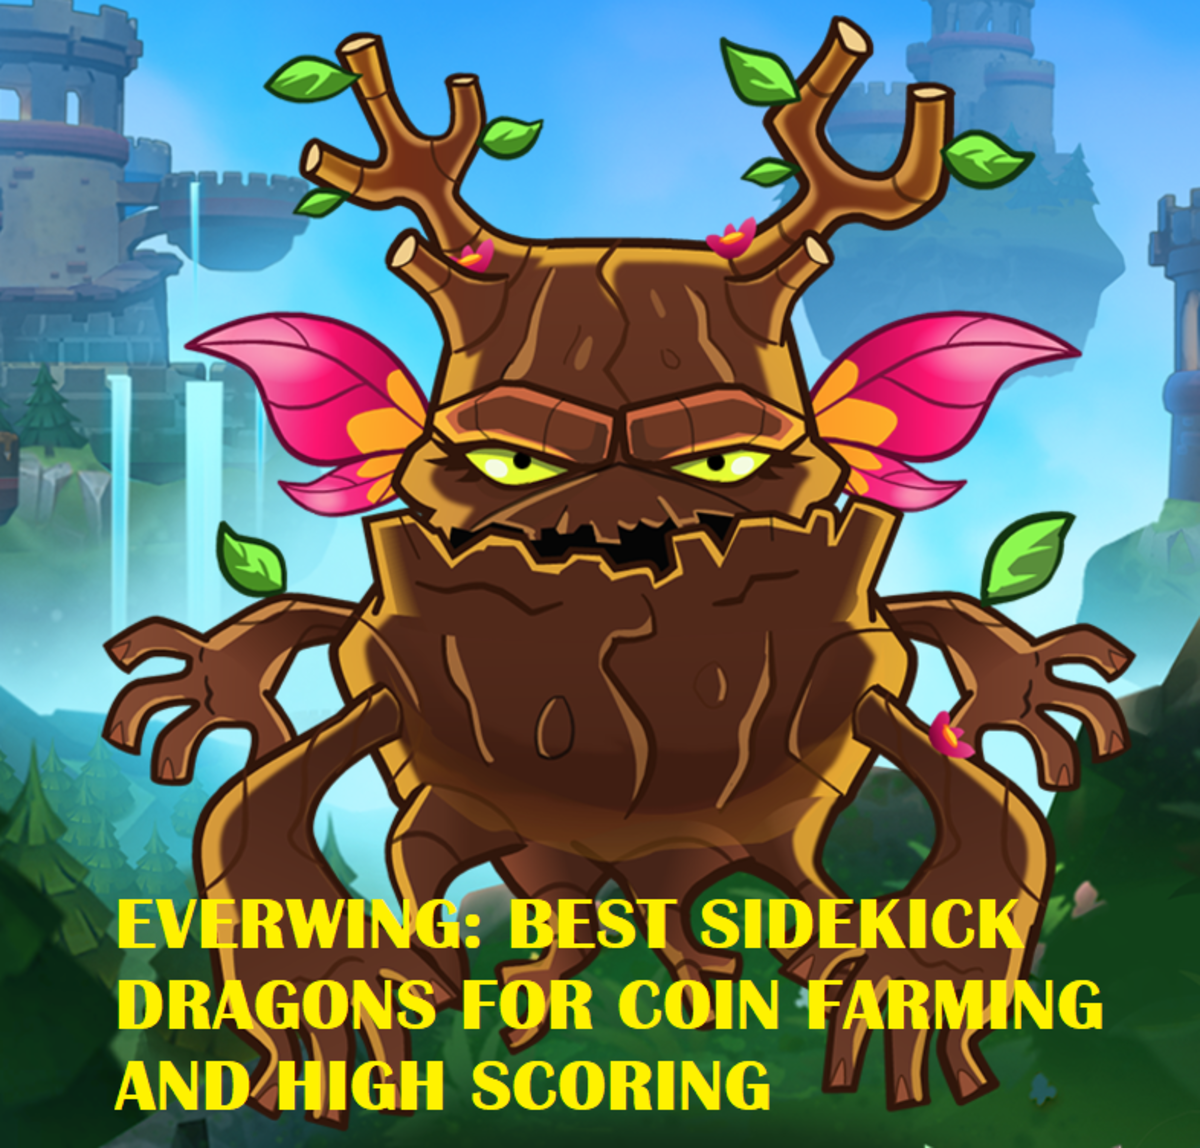 EverWing: Best Sidekick Dragons for Coin Farming and High Scoring